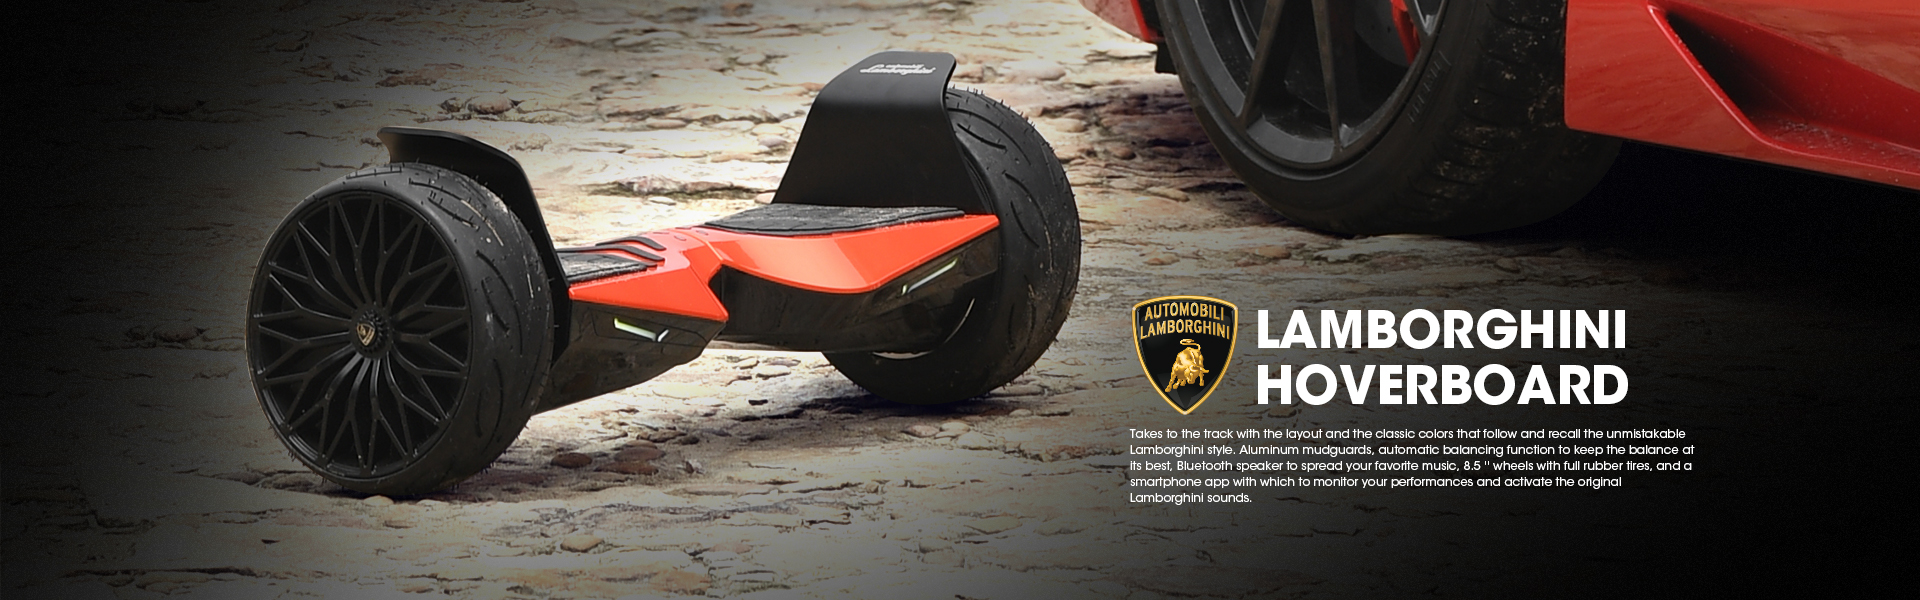 Red Lamborghini Hoverboard 8.5 inch Offical Automobili Lamborghini Authorized Bluetooth Hoverboard